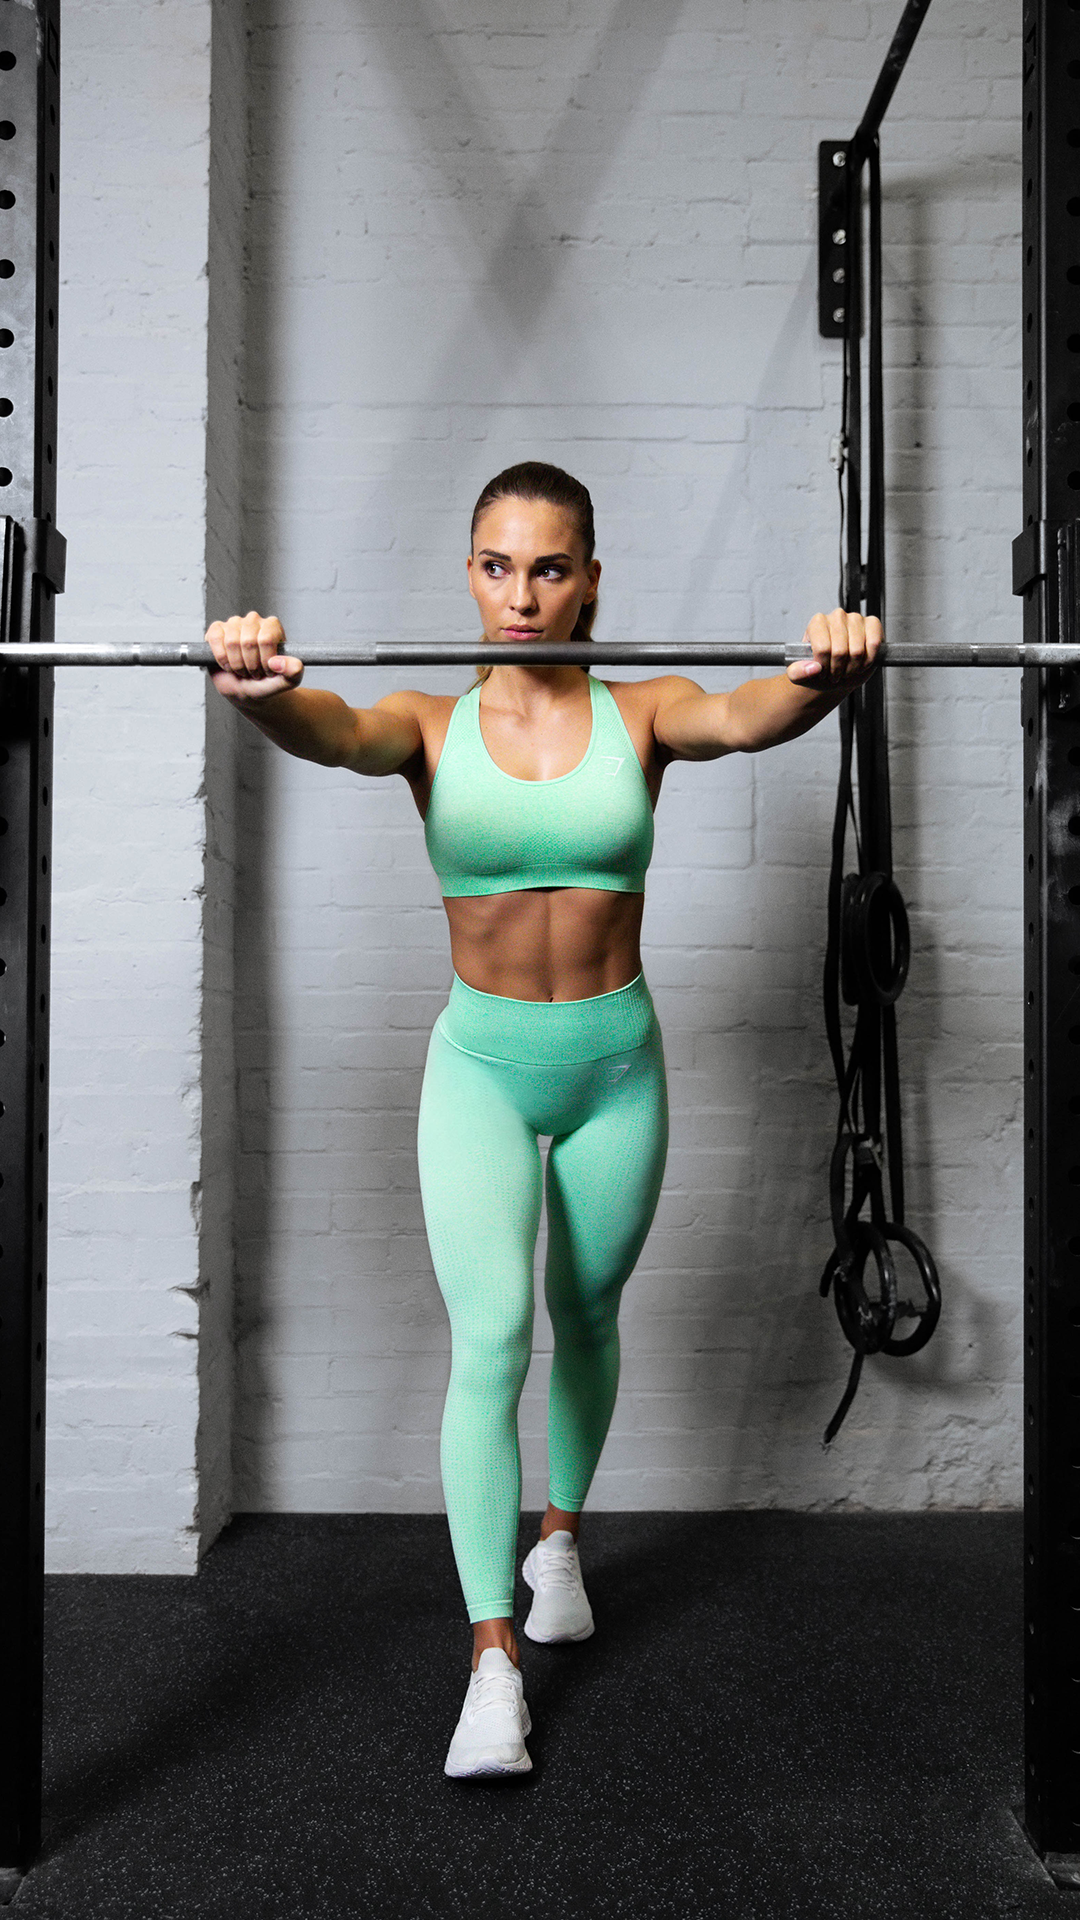 We're green with envy over this Sour Pistachio Marl look. Here, Evelina sports the Sports Bra and Le...